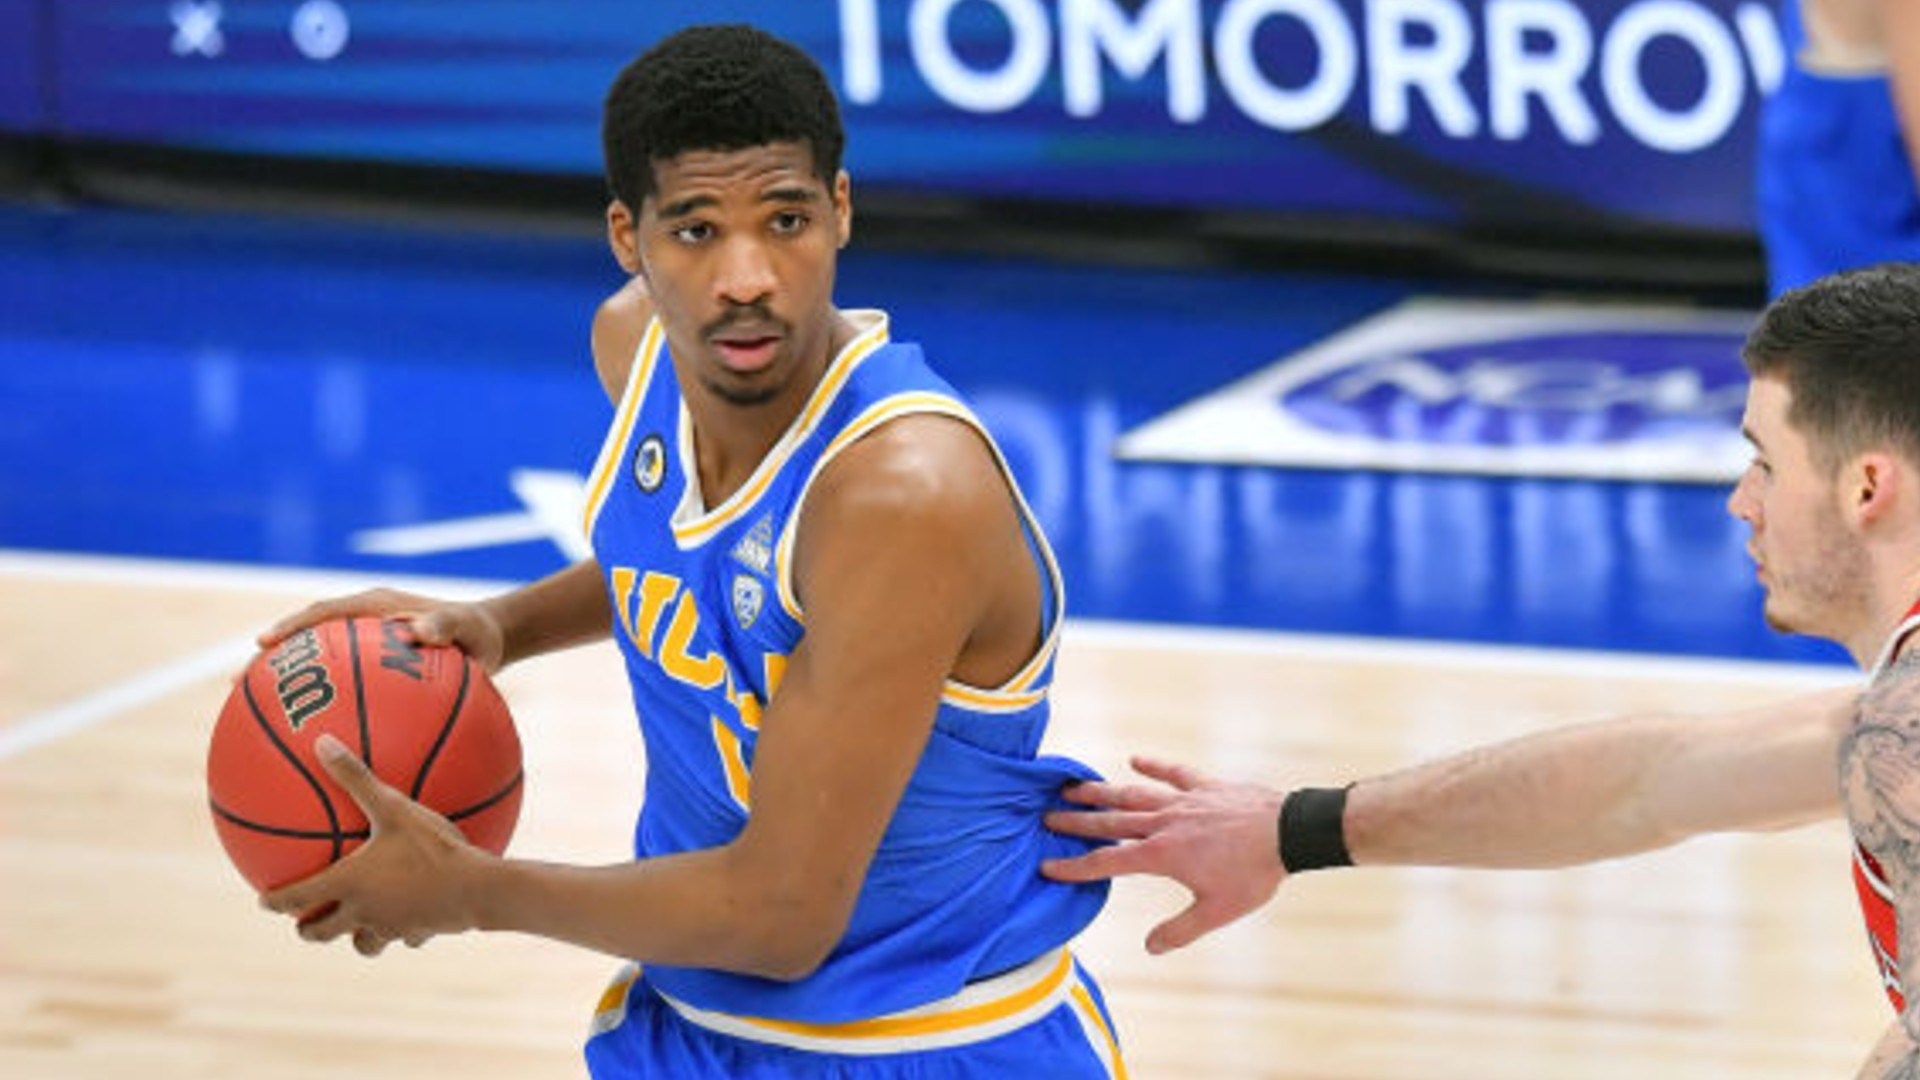 Chris Smith of the UCLA Bruins looks for a pass during the second half at Rocket Mortgage Fieldhouse on December 19, 2020 in Cleveland, Ohio. (Photo by Jason Miller/Getty Images)